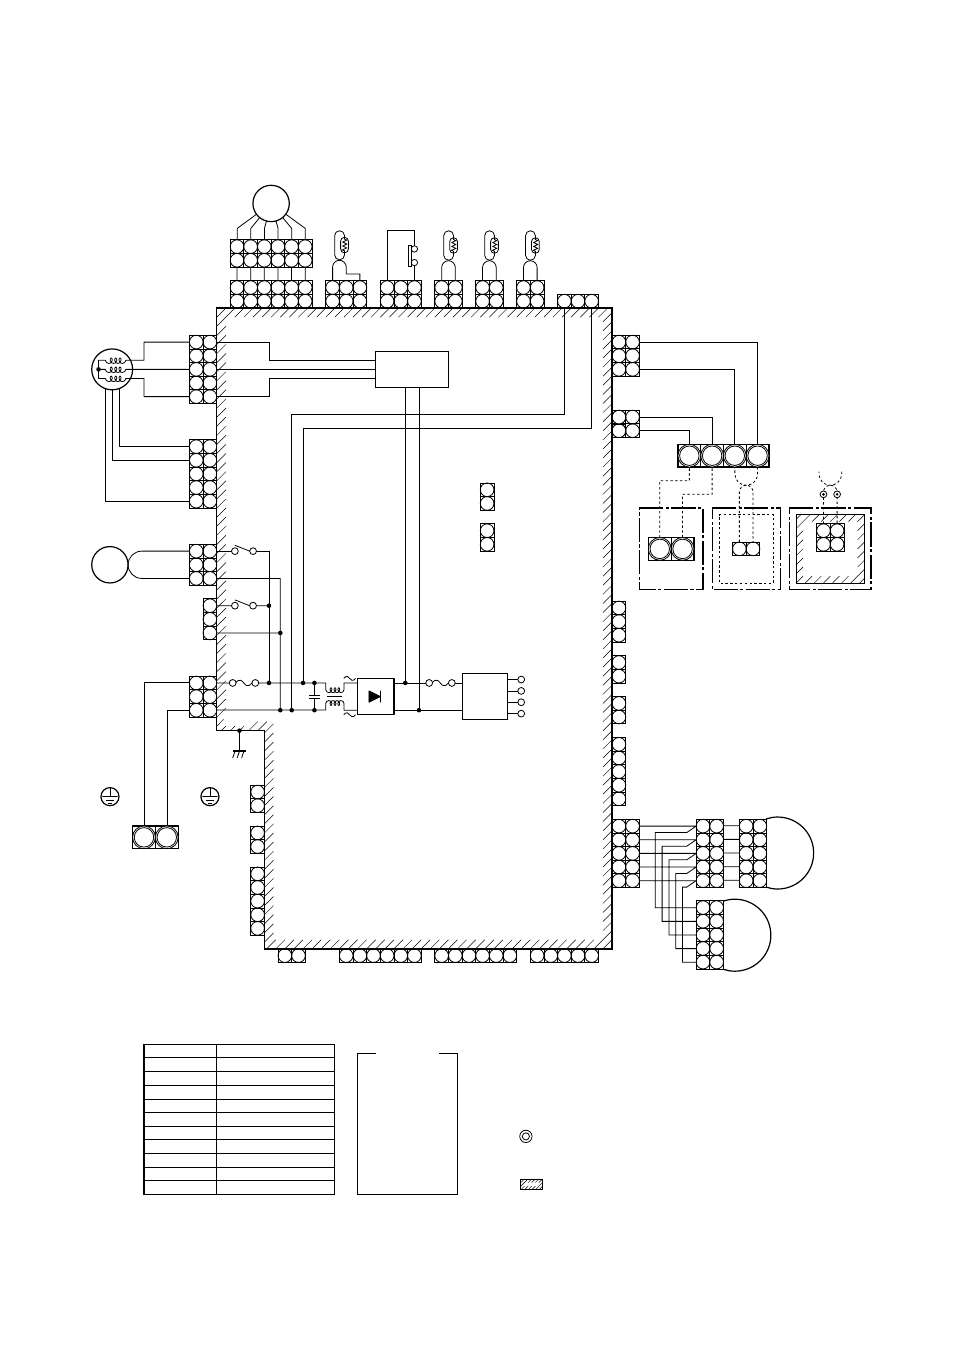 toshiba mmu ap0121mh page9 wiring diagram, control p c board for indoor unit mcc 1402 toshiba motor wiring diagram at edmiracle.co